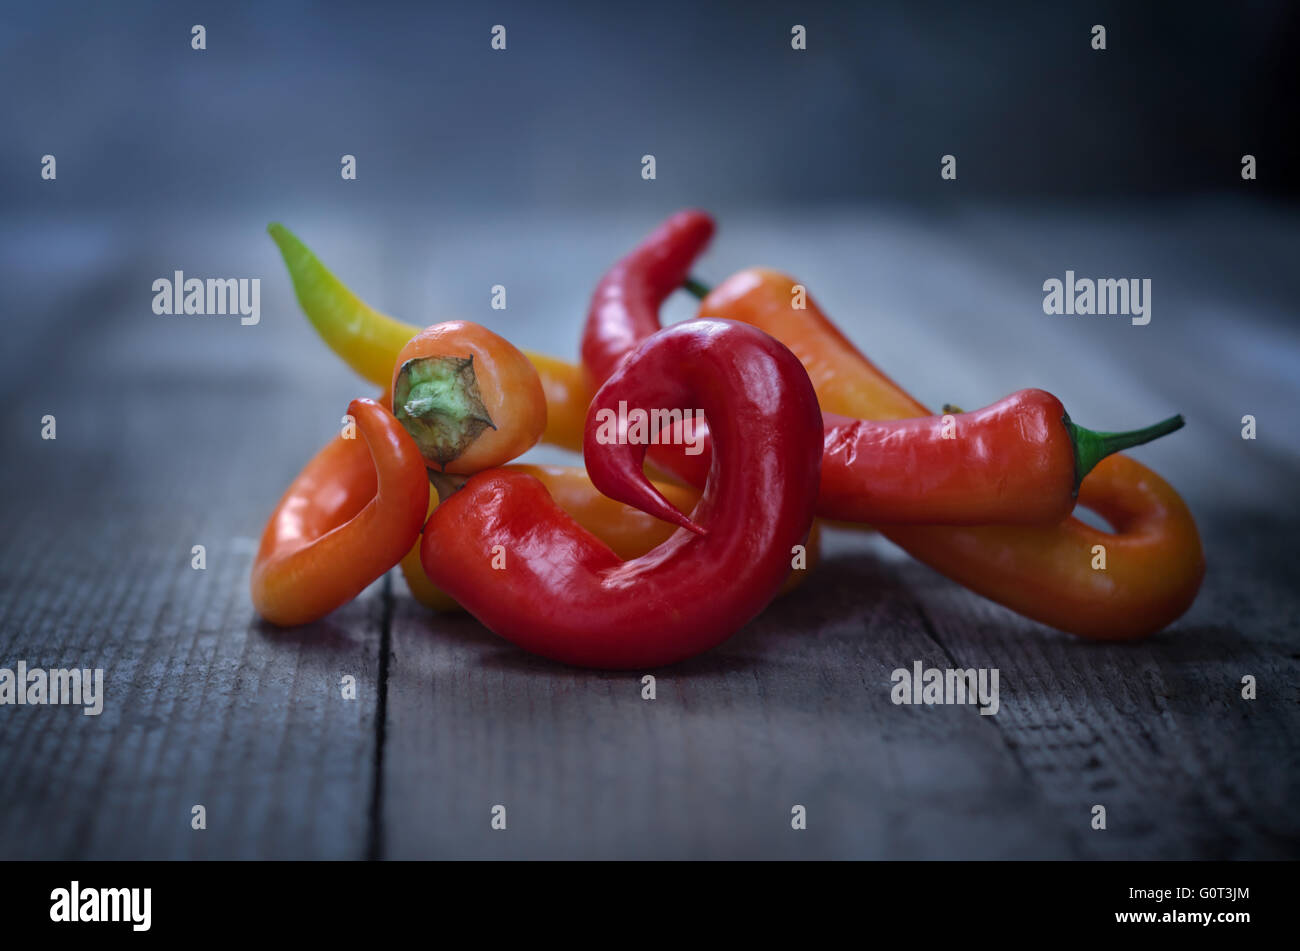 Colorful chili peppers on old wooden background. - Stock Image